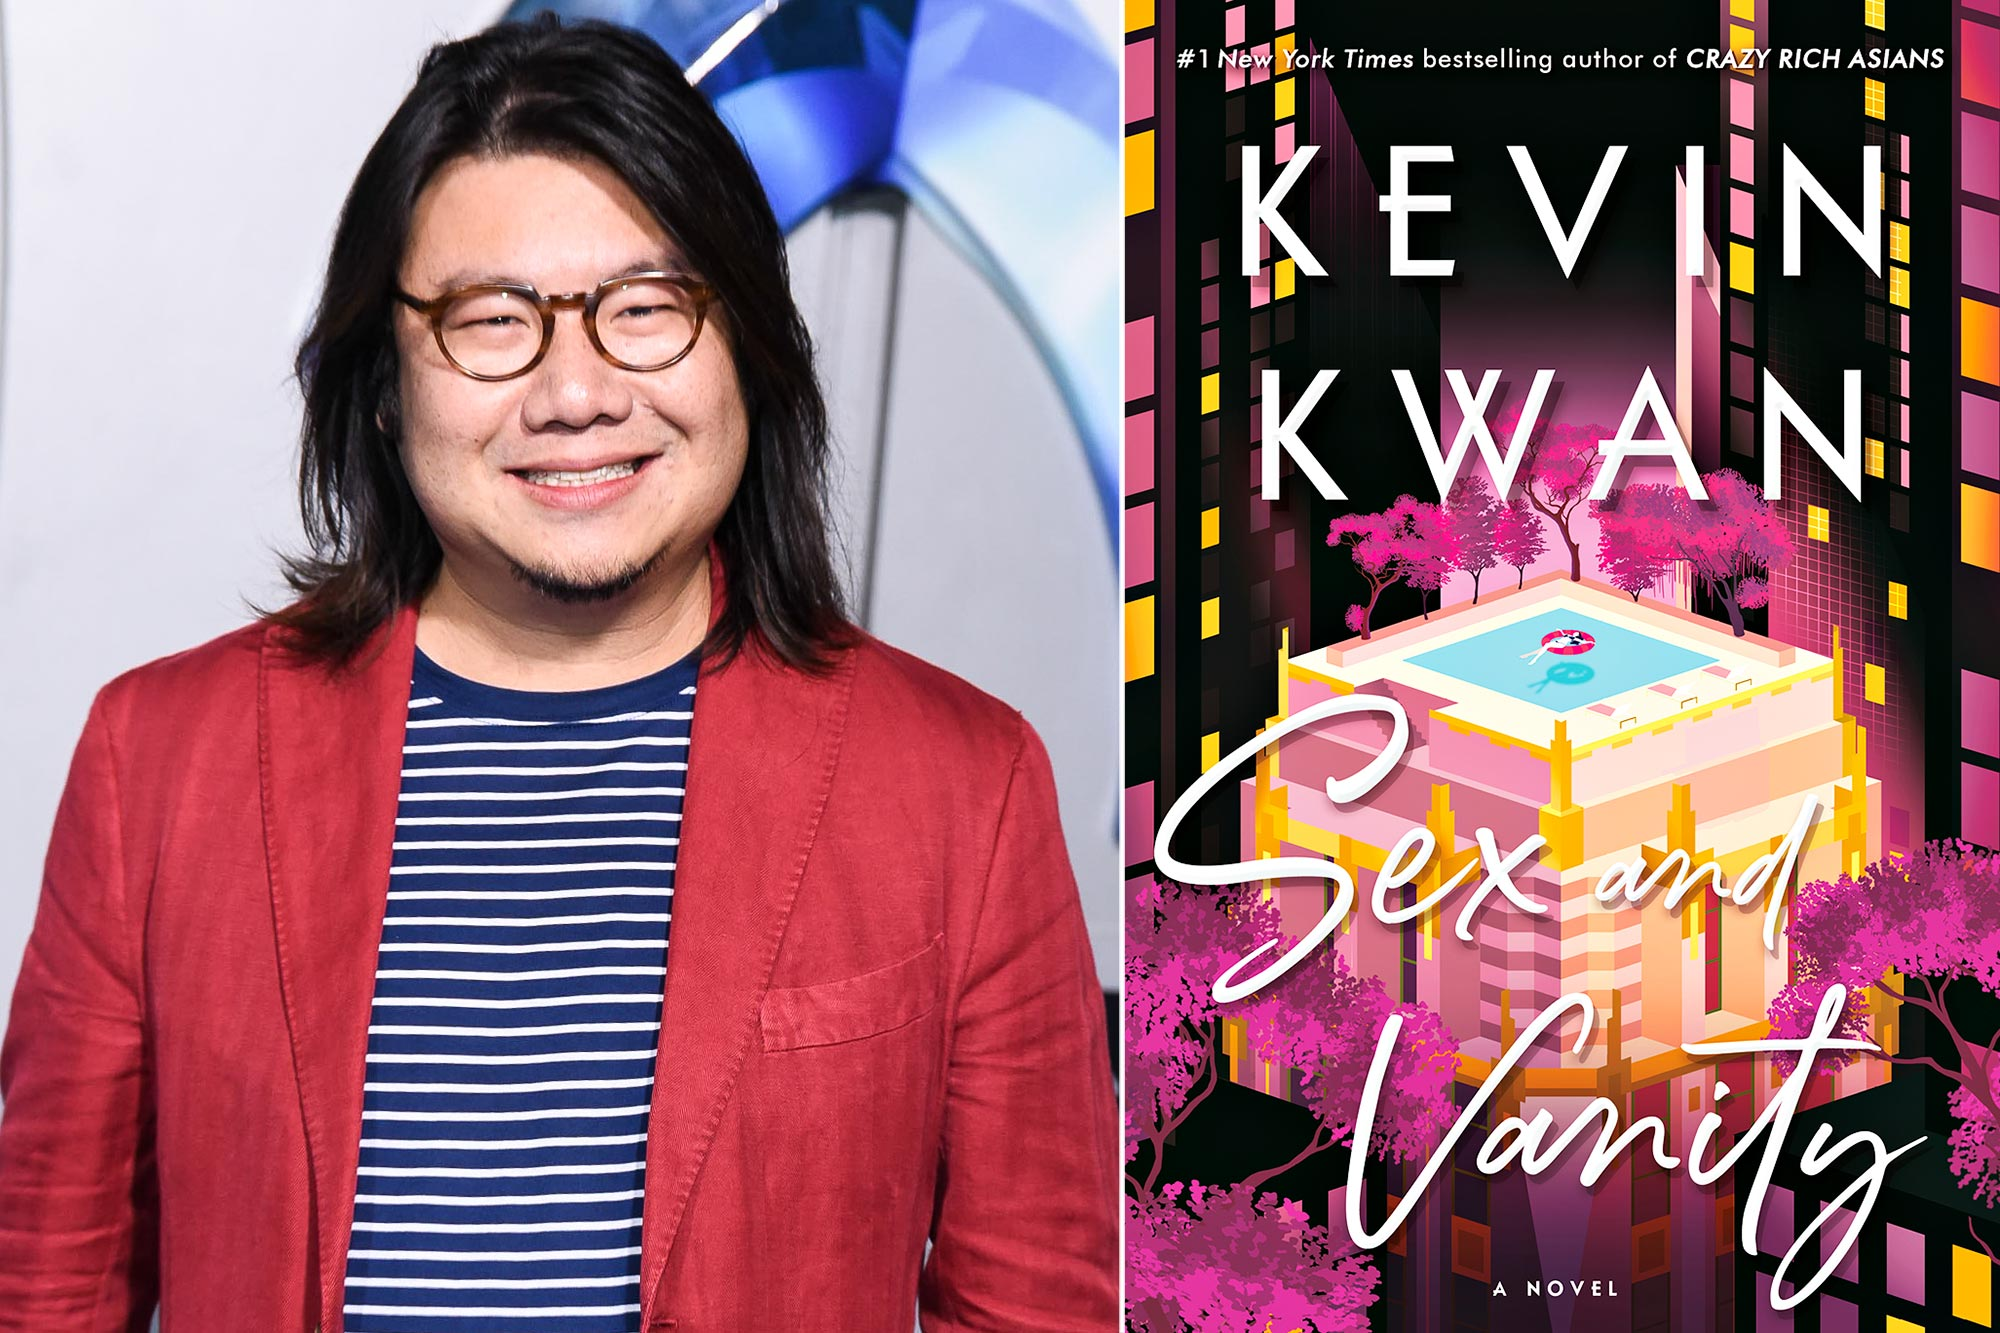 Kevin Kwan, Sex and Vanity by Kevin Kwan